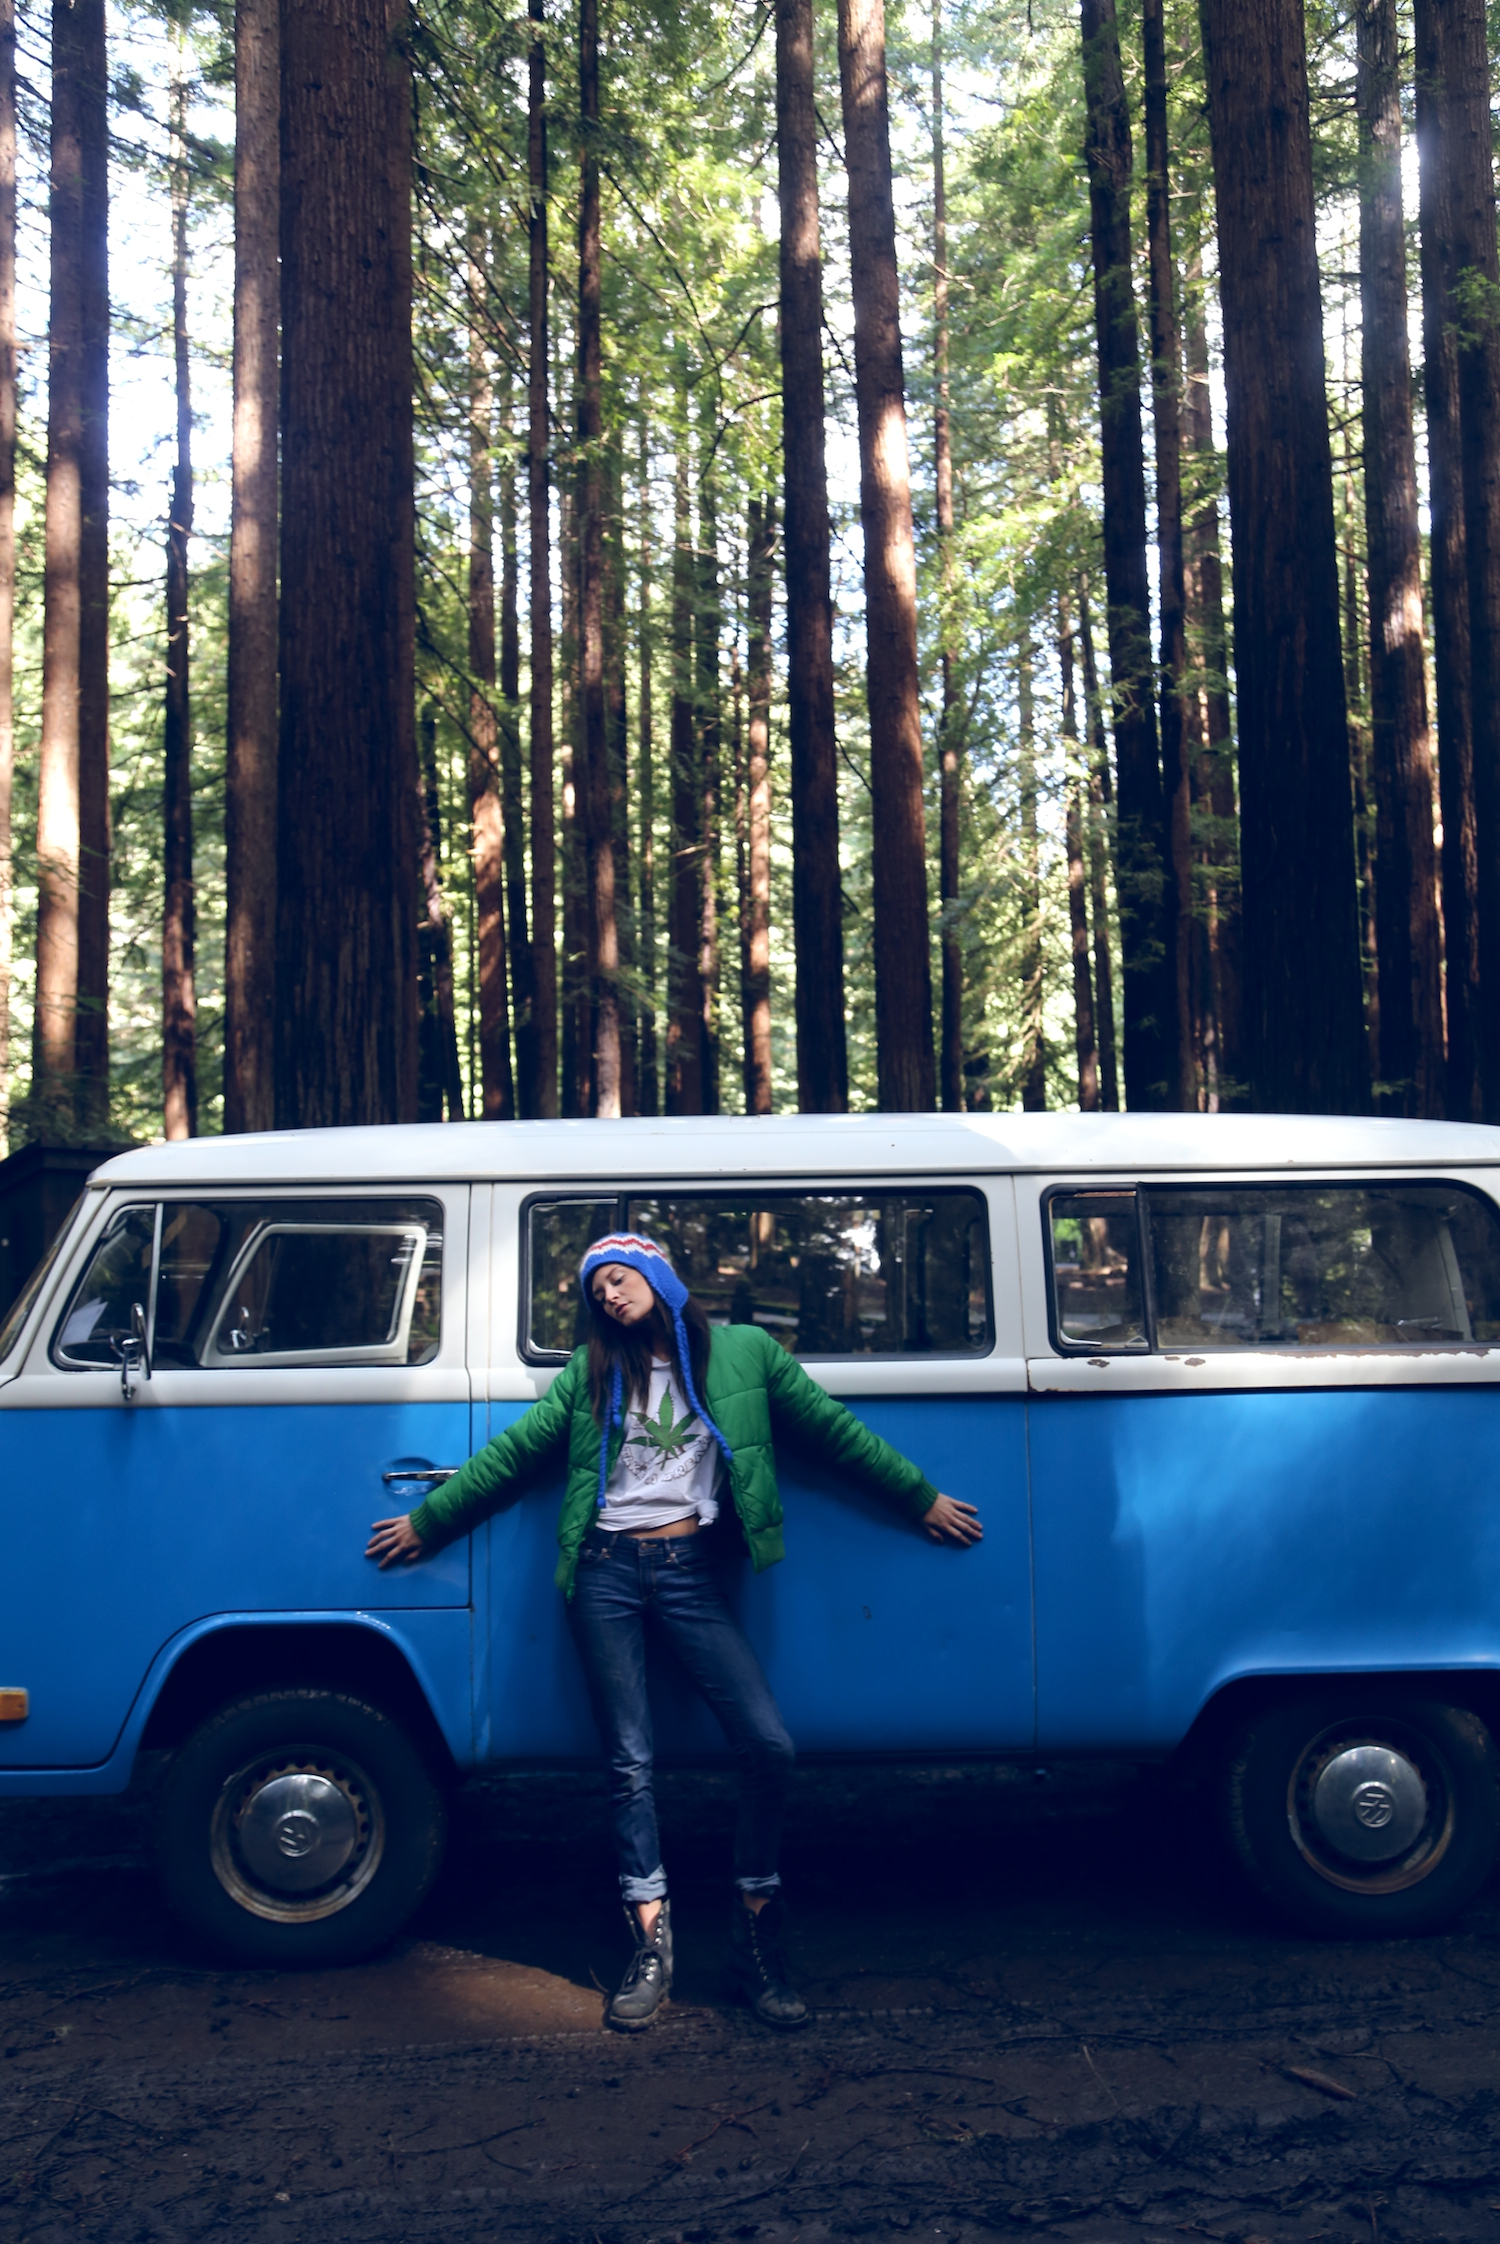 vw bus, vintage, camping, millennial, clamping, redwoods national park, lifestyle  camping, road trip,heather van gaale, lifestyle photographer, natural images, in the moment, camping, road trip